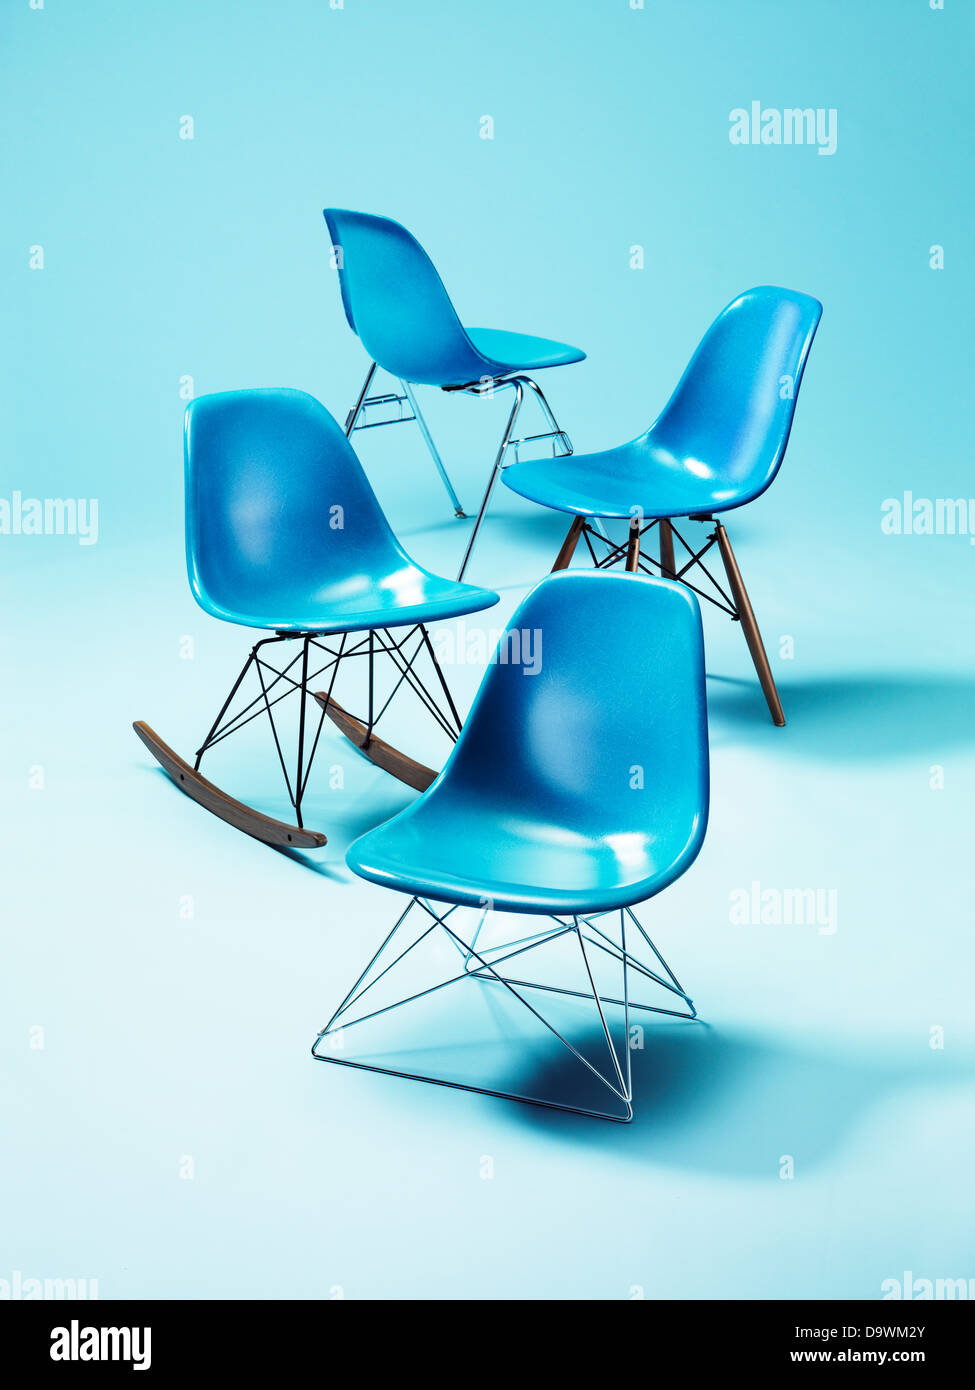 Eames Stock Photos & Eames Stock Images - Alamy